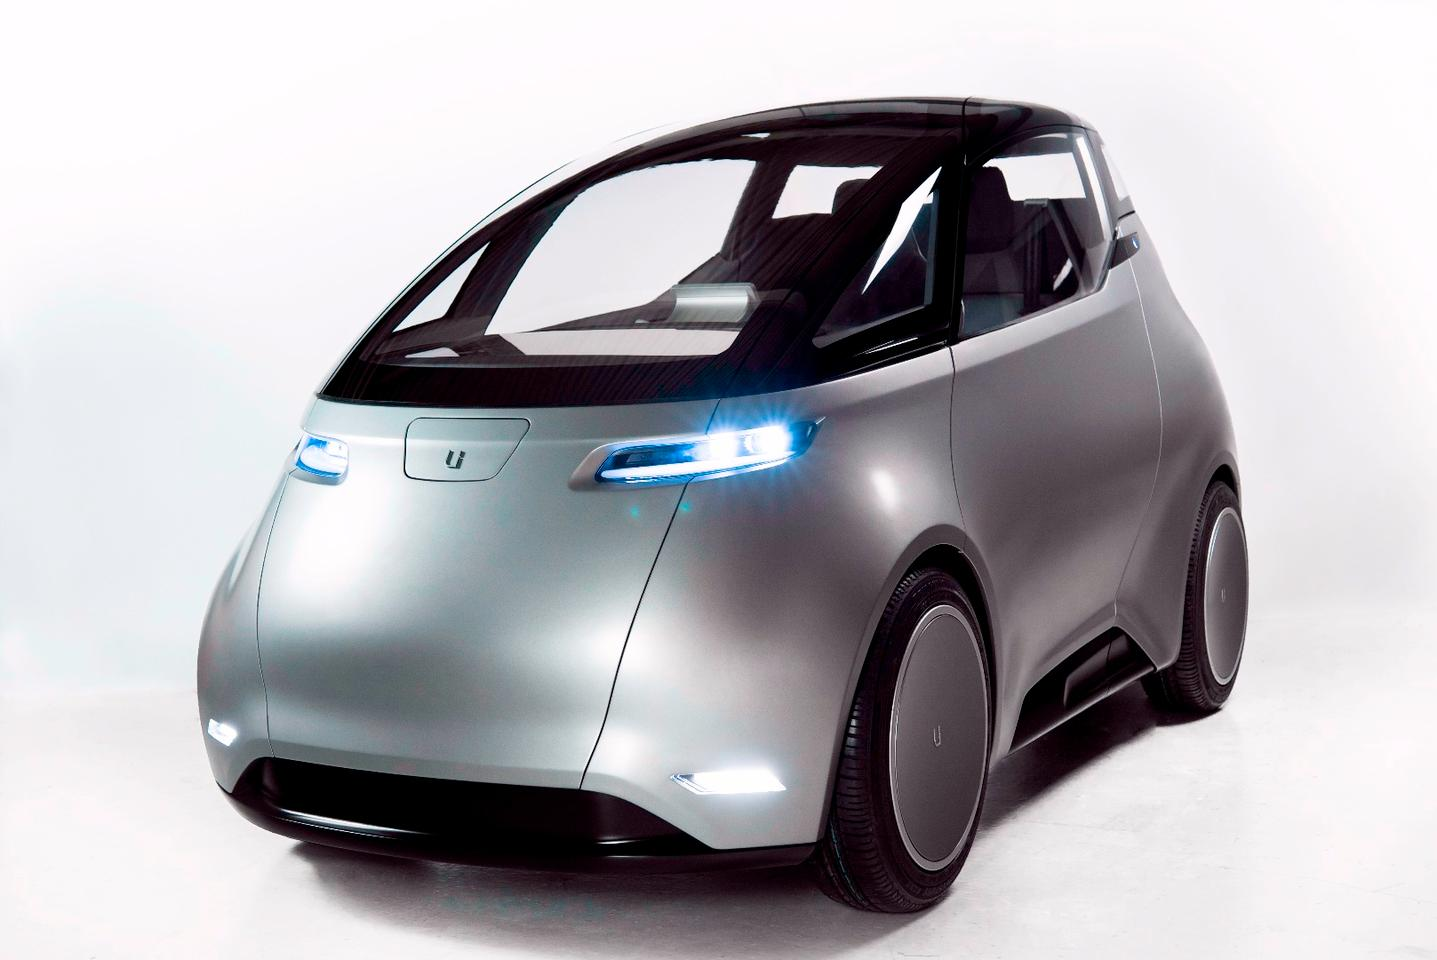 The two-seat One is the first in a line of electric vehicles from Sweden's Uniti